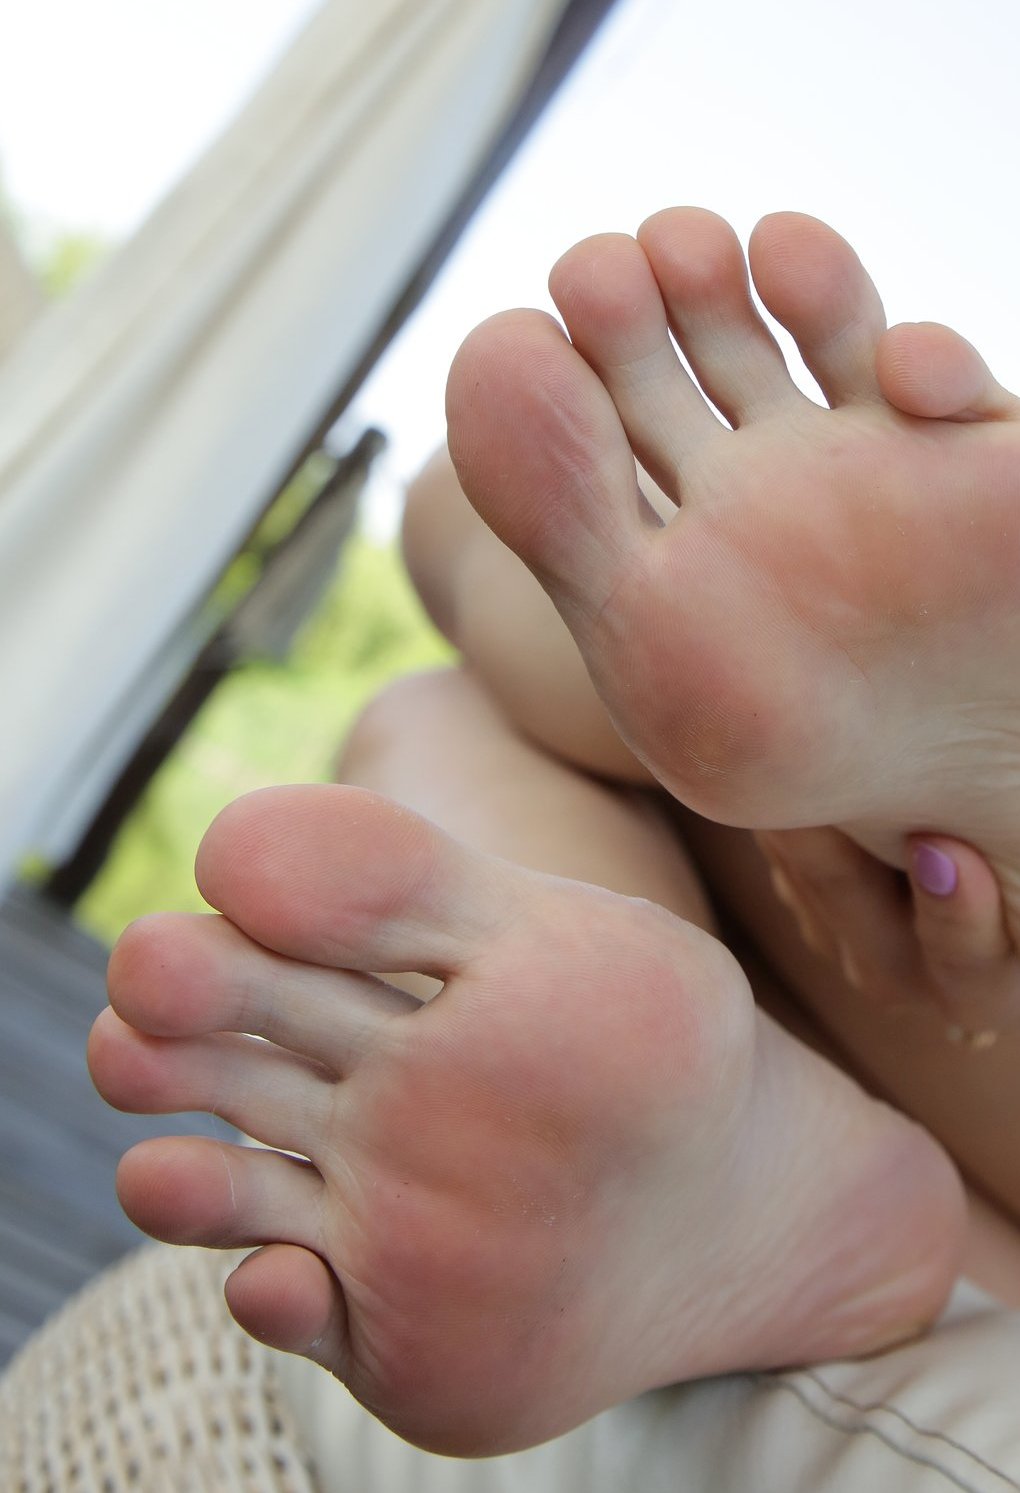 Lilu Moon's toes